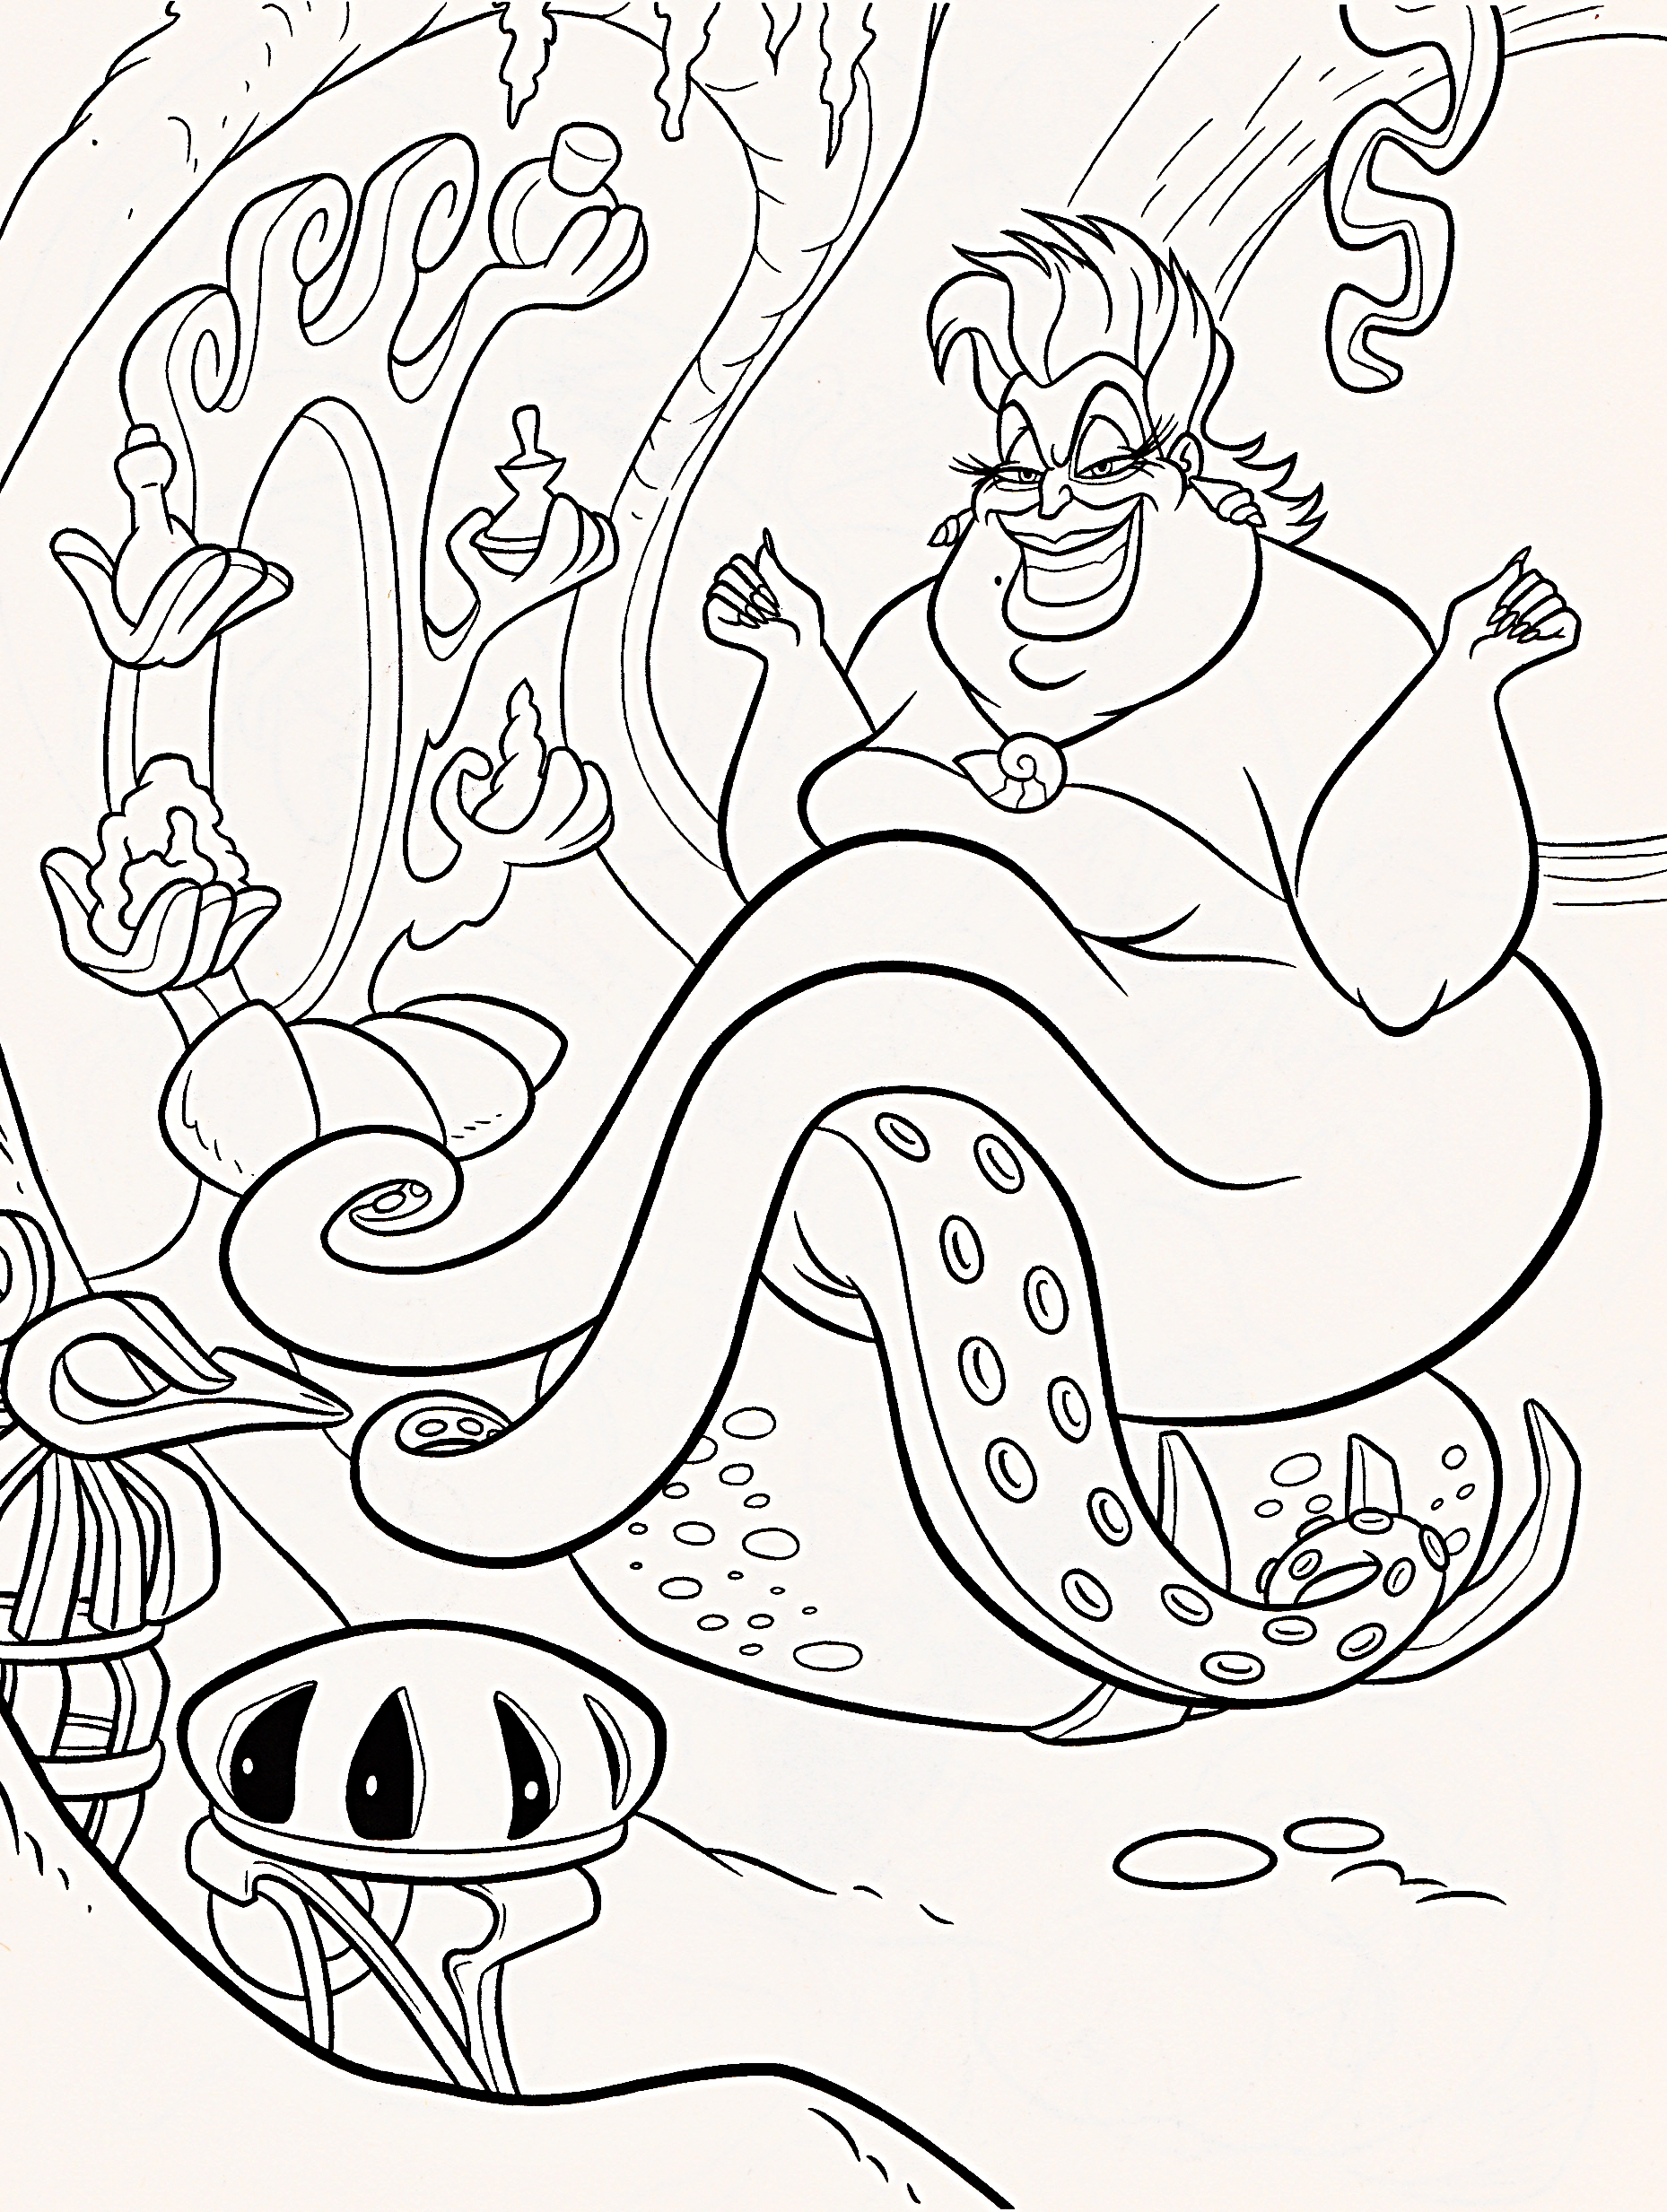 Ursula Coloring Pages Only Coloring Pages Ursula Coloring Page